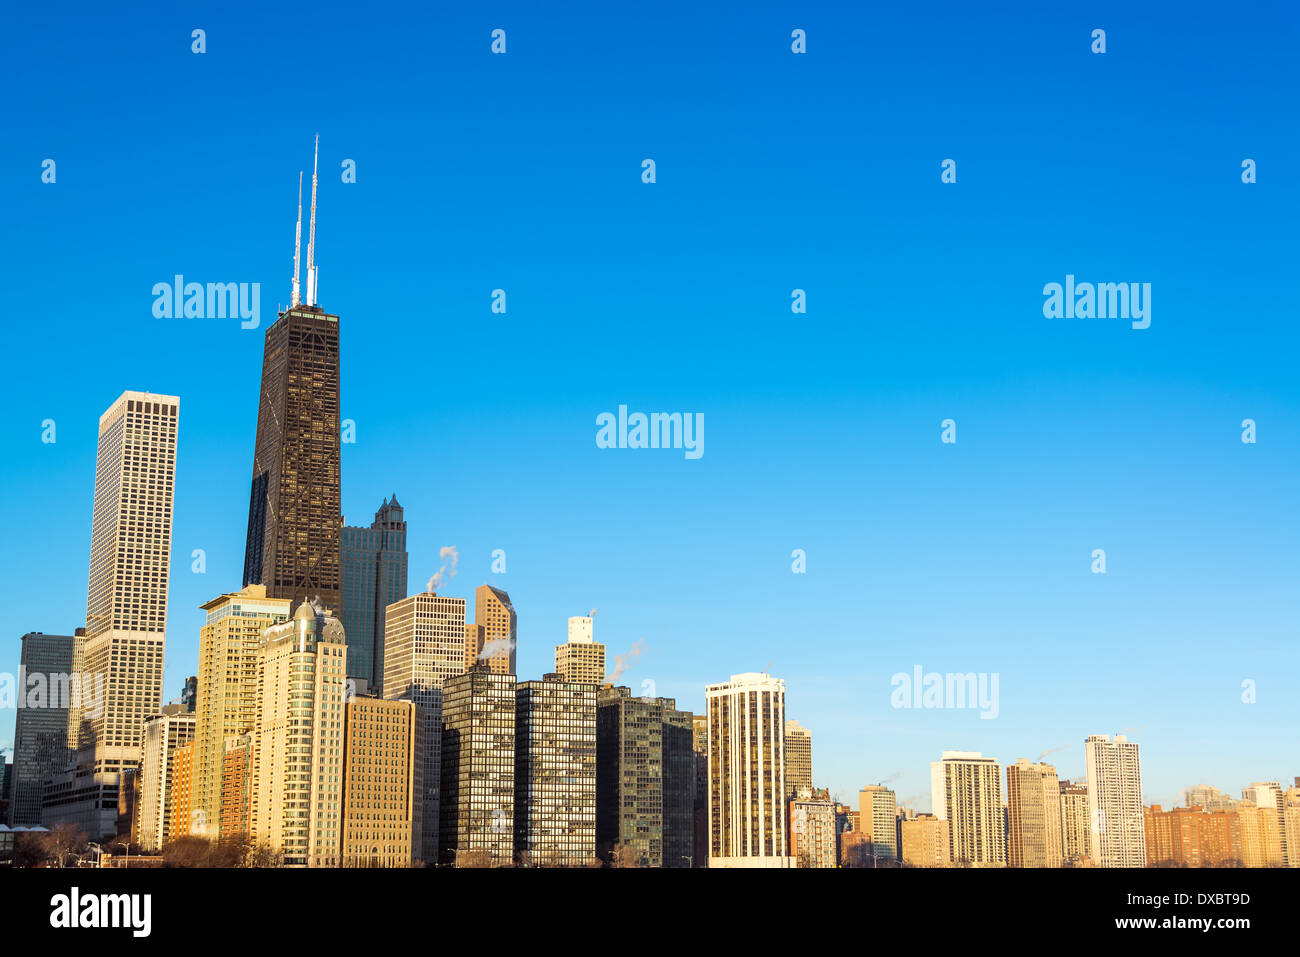 View of Chicago skyscrapers with a beautiful deep blue sky Stock Photo